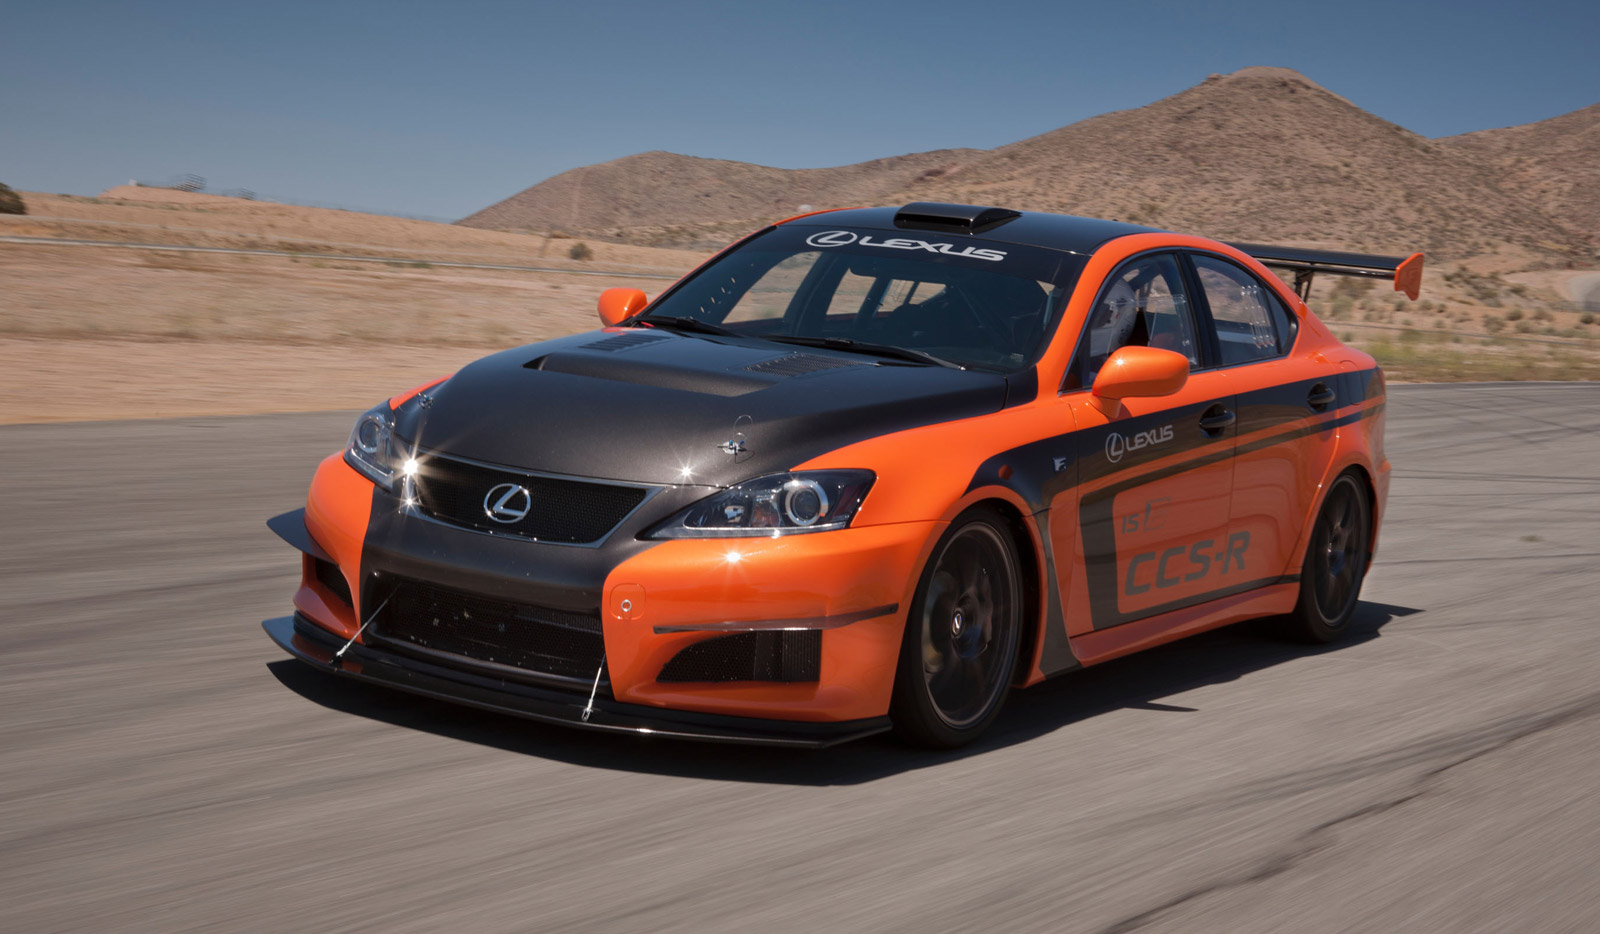 2012 lexus is f ccs r to tackle pikes peak hill climb. Black Bedroom Furniture Sets. Home Design Ideas